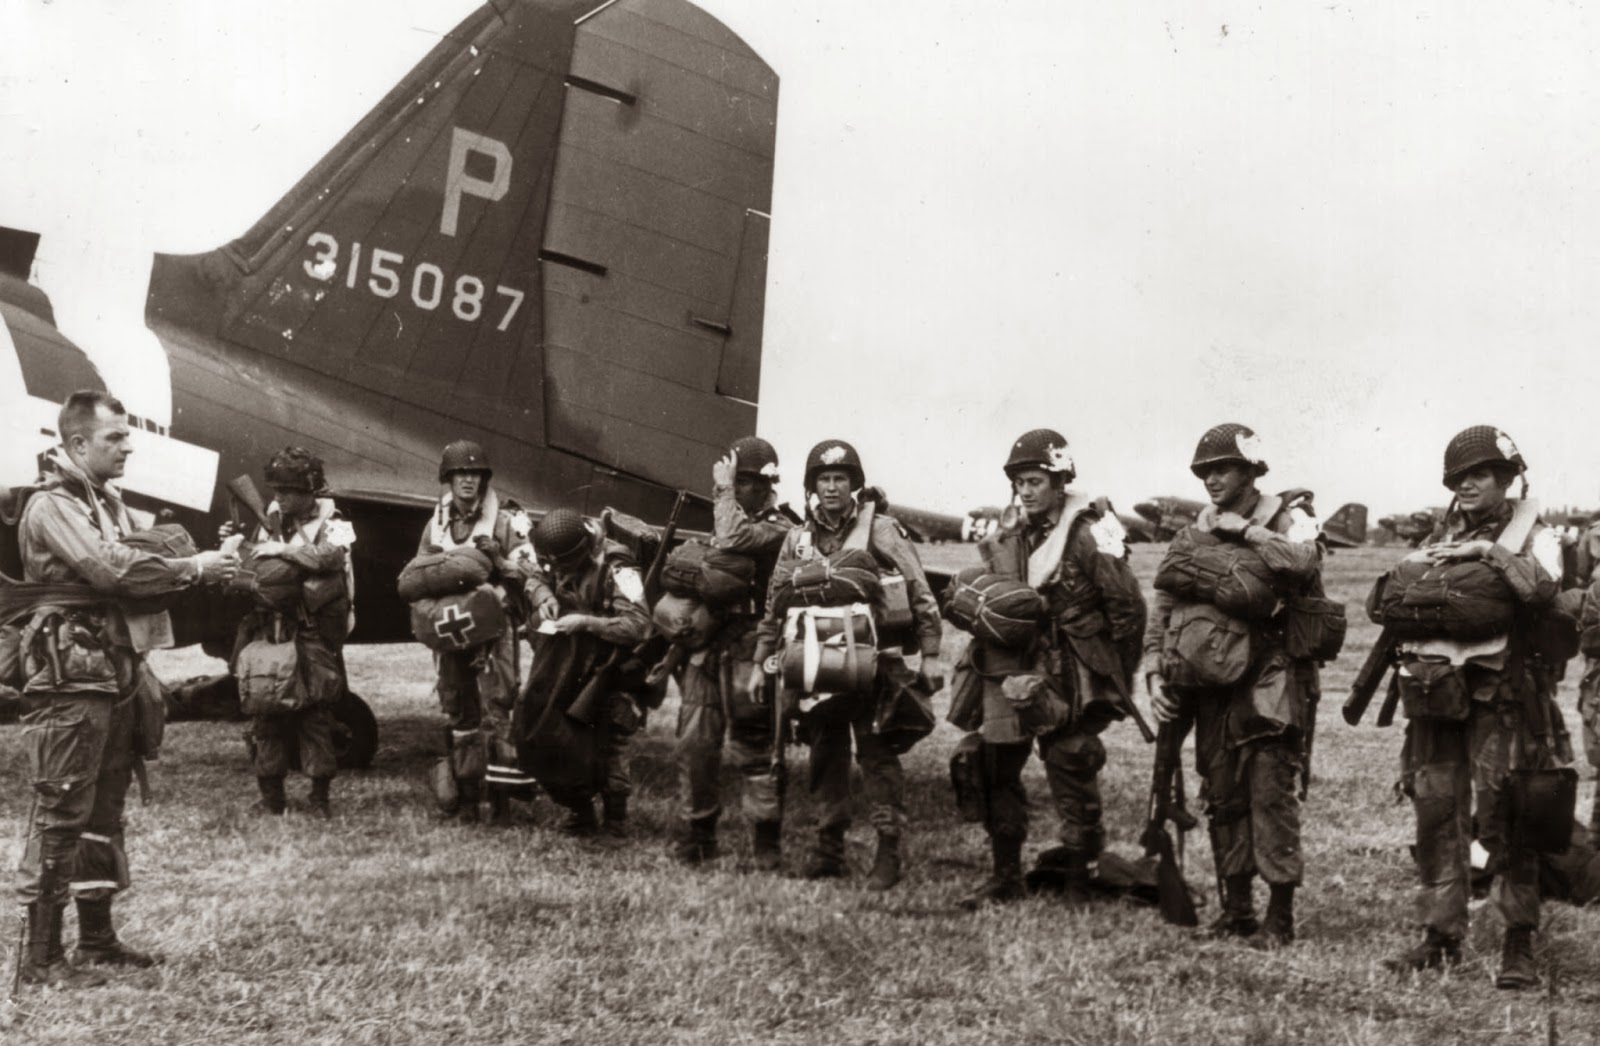 101st-airborne-division-paratroopers